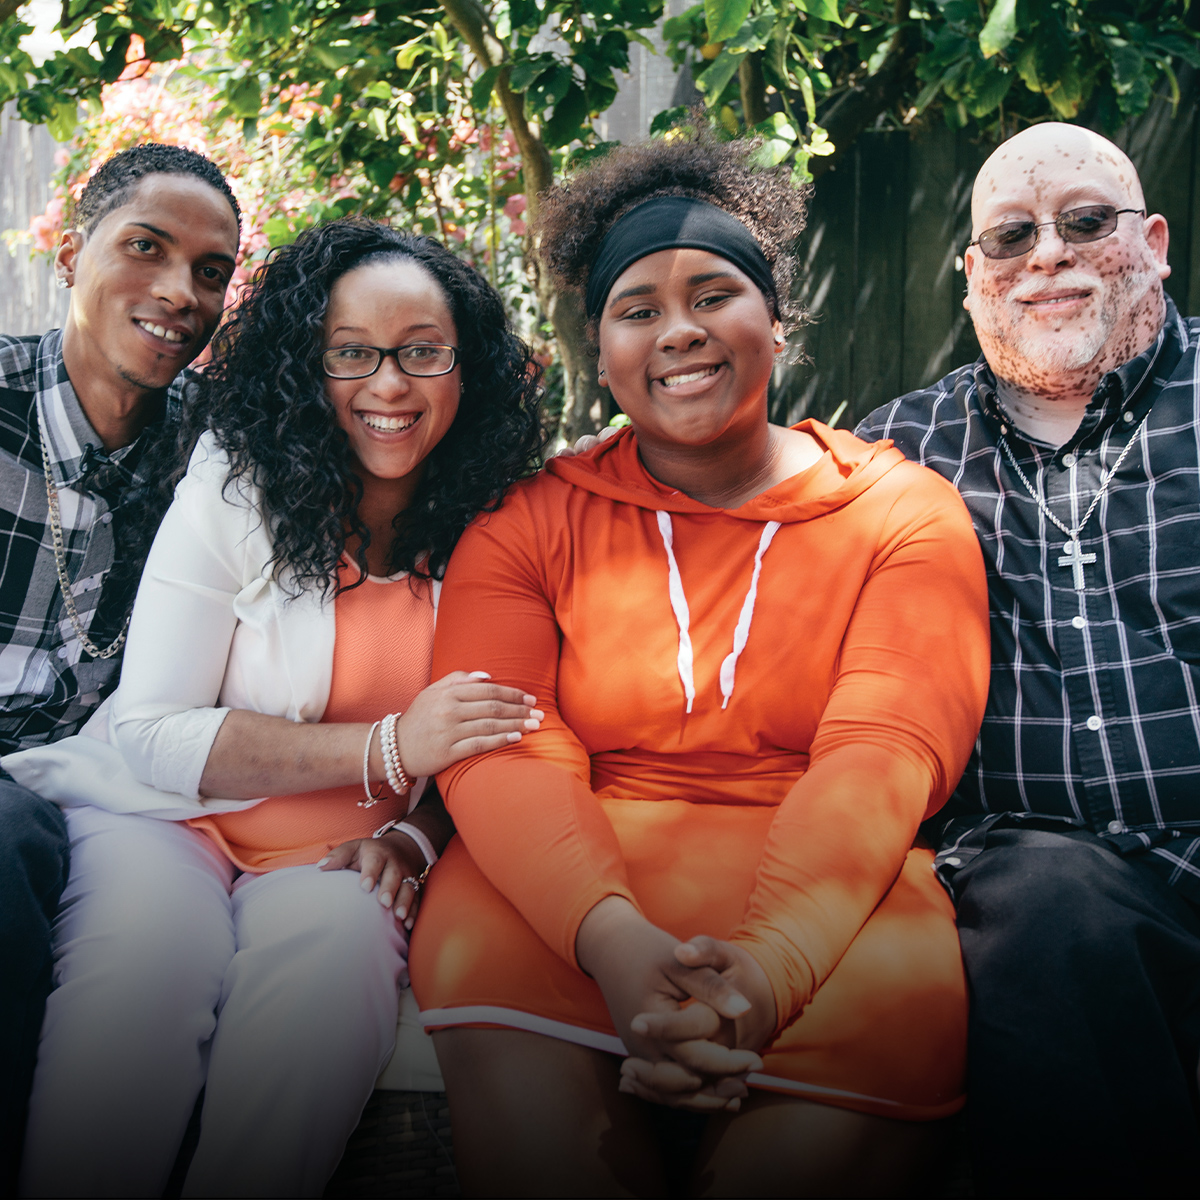 African American family smiling in casual clothing.